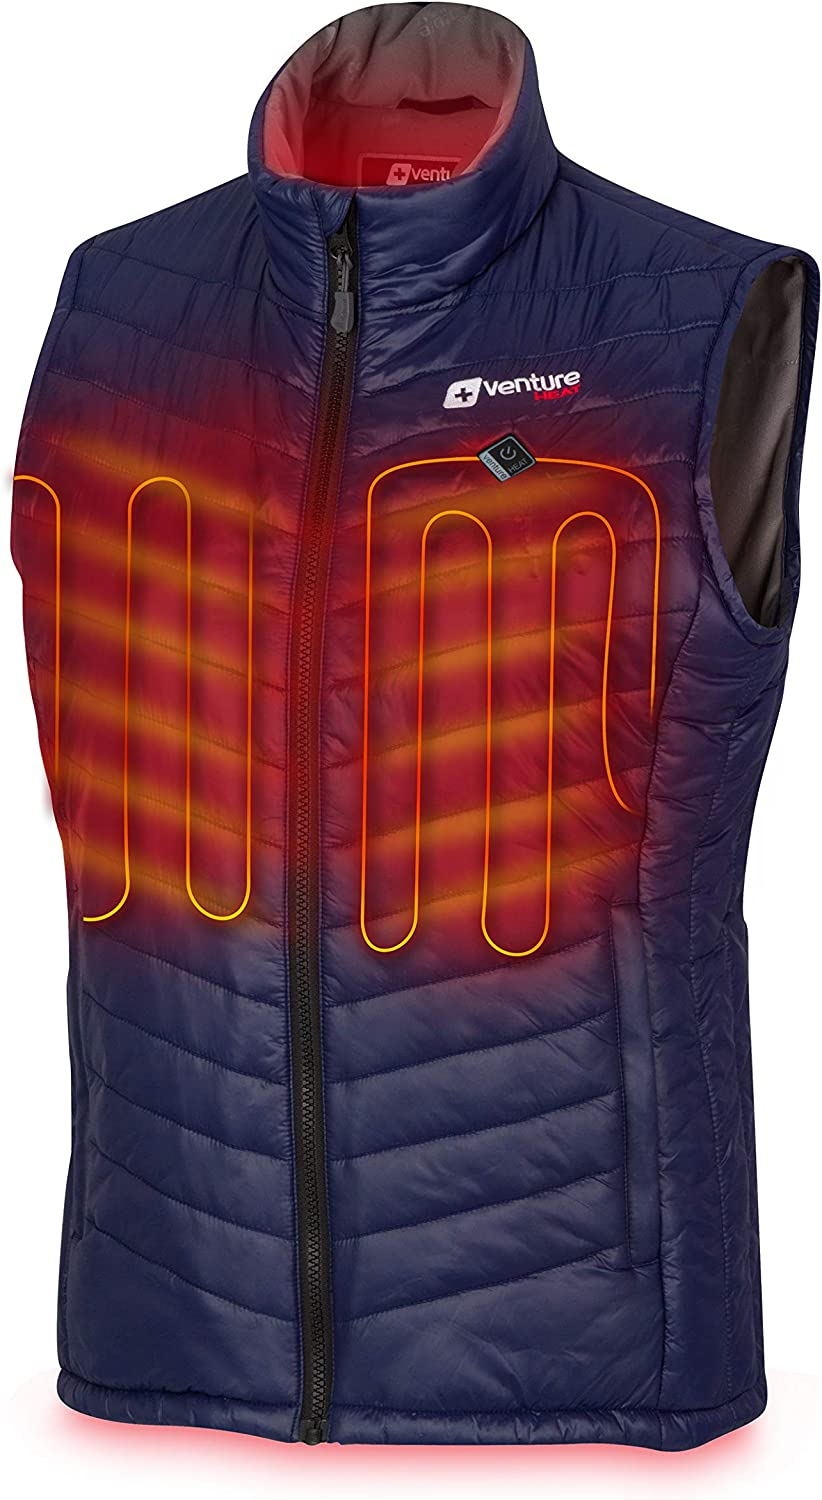 Venture Heat Women's Heated Vest with Battery Pack - Insulated Electric Jacket, Puffer Vest, Roam 2.0: Clothing